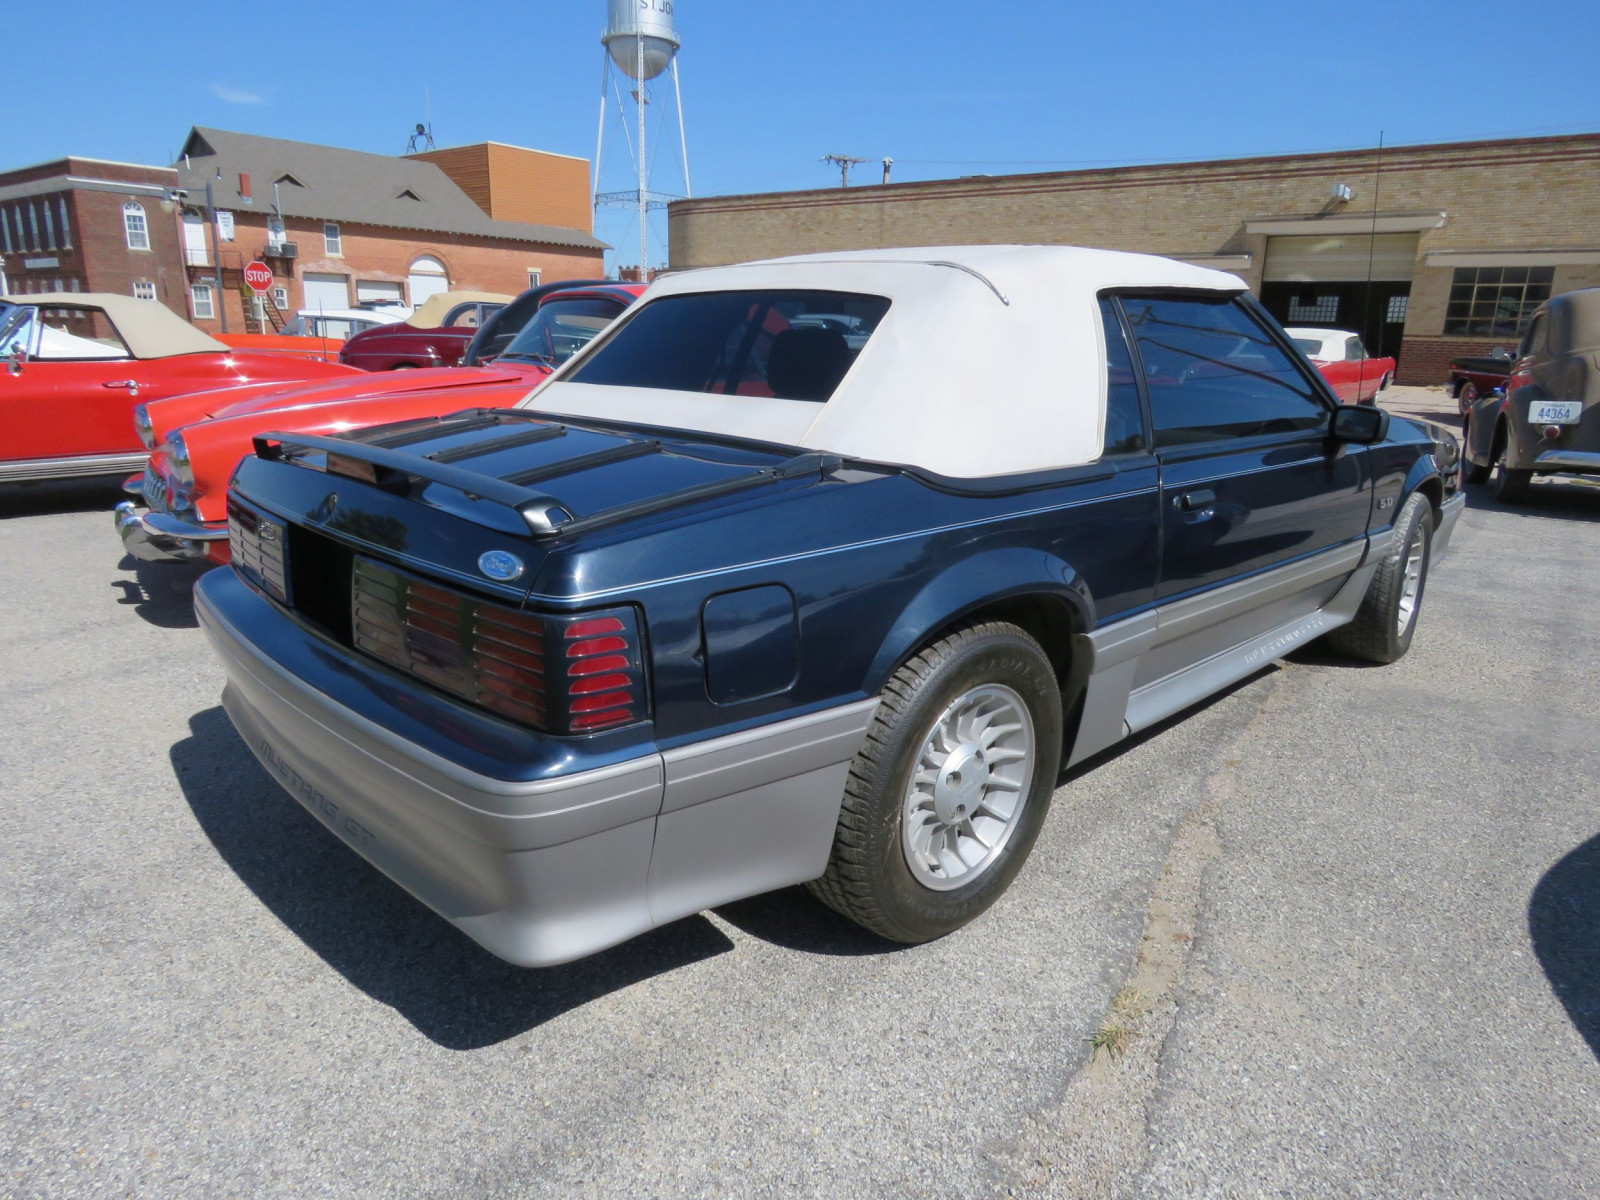 1988 FORD MUSTANG GT 5.0 CONVERTIBLE - Image 5